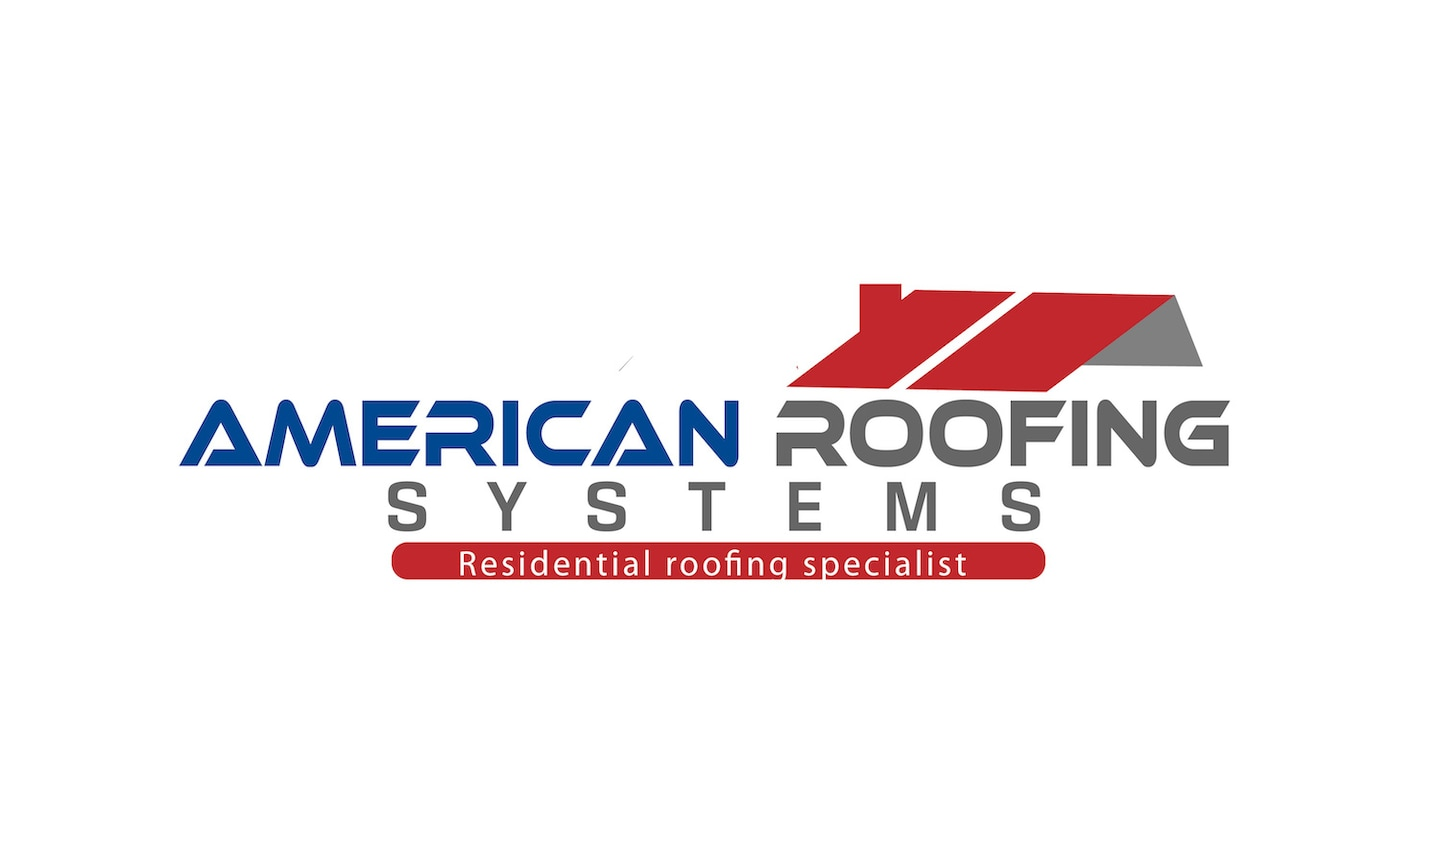 American Roofing Systems